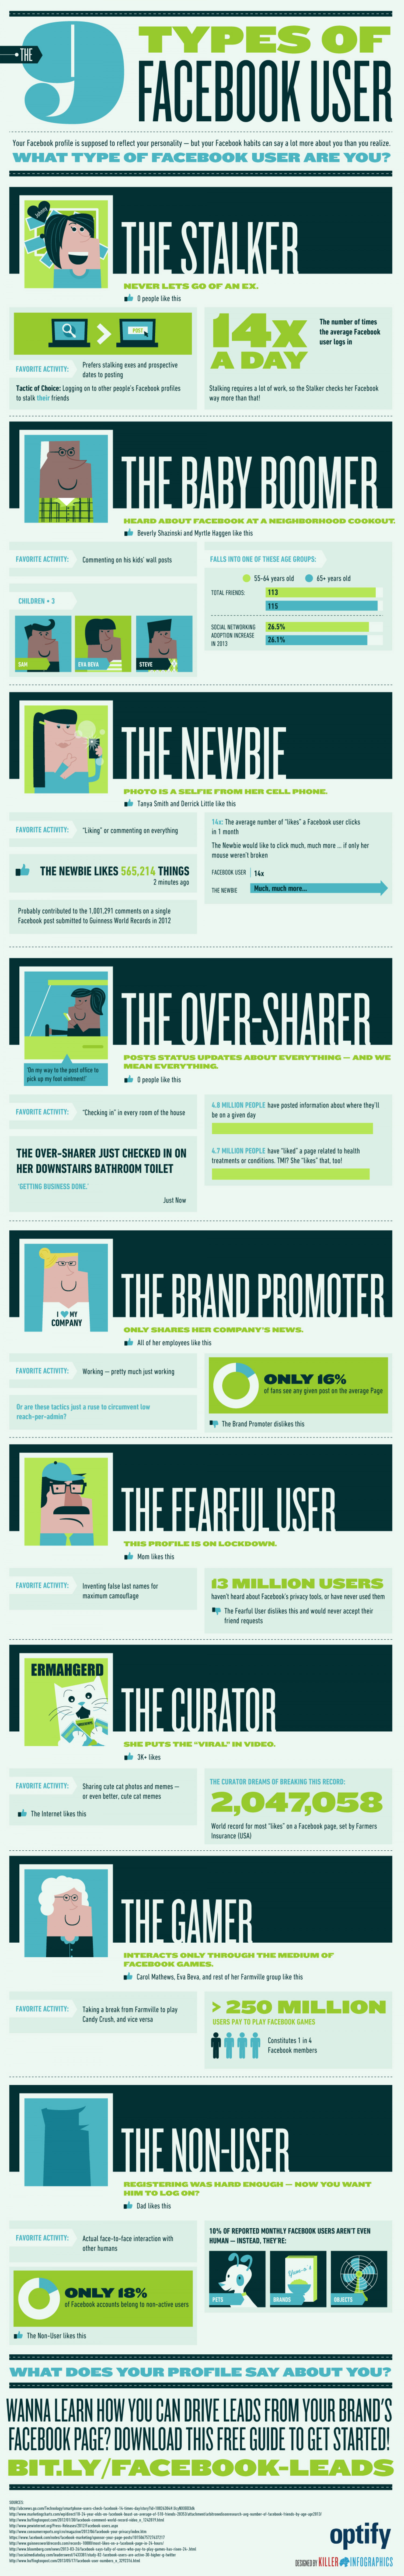 The 9 Types of Facebook User Infographic